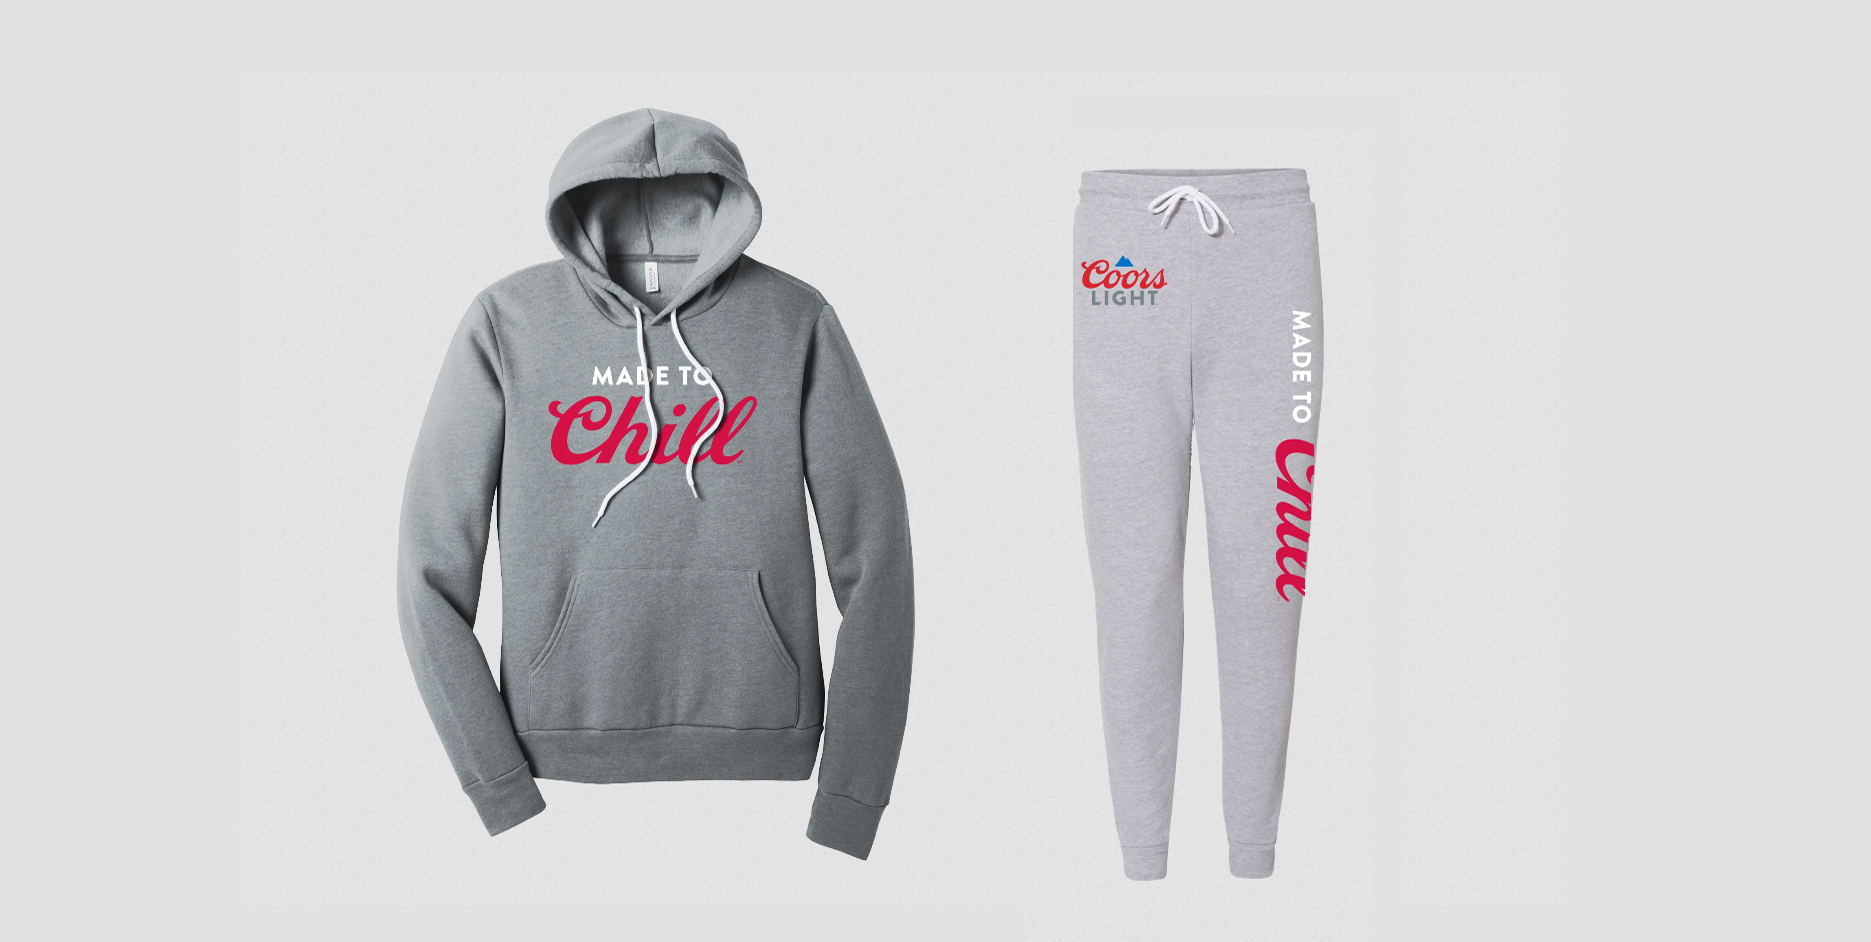 Coors Light chill clothes